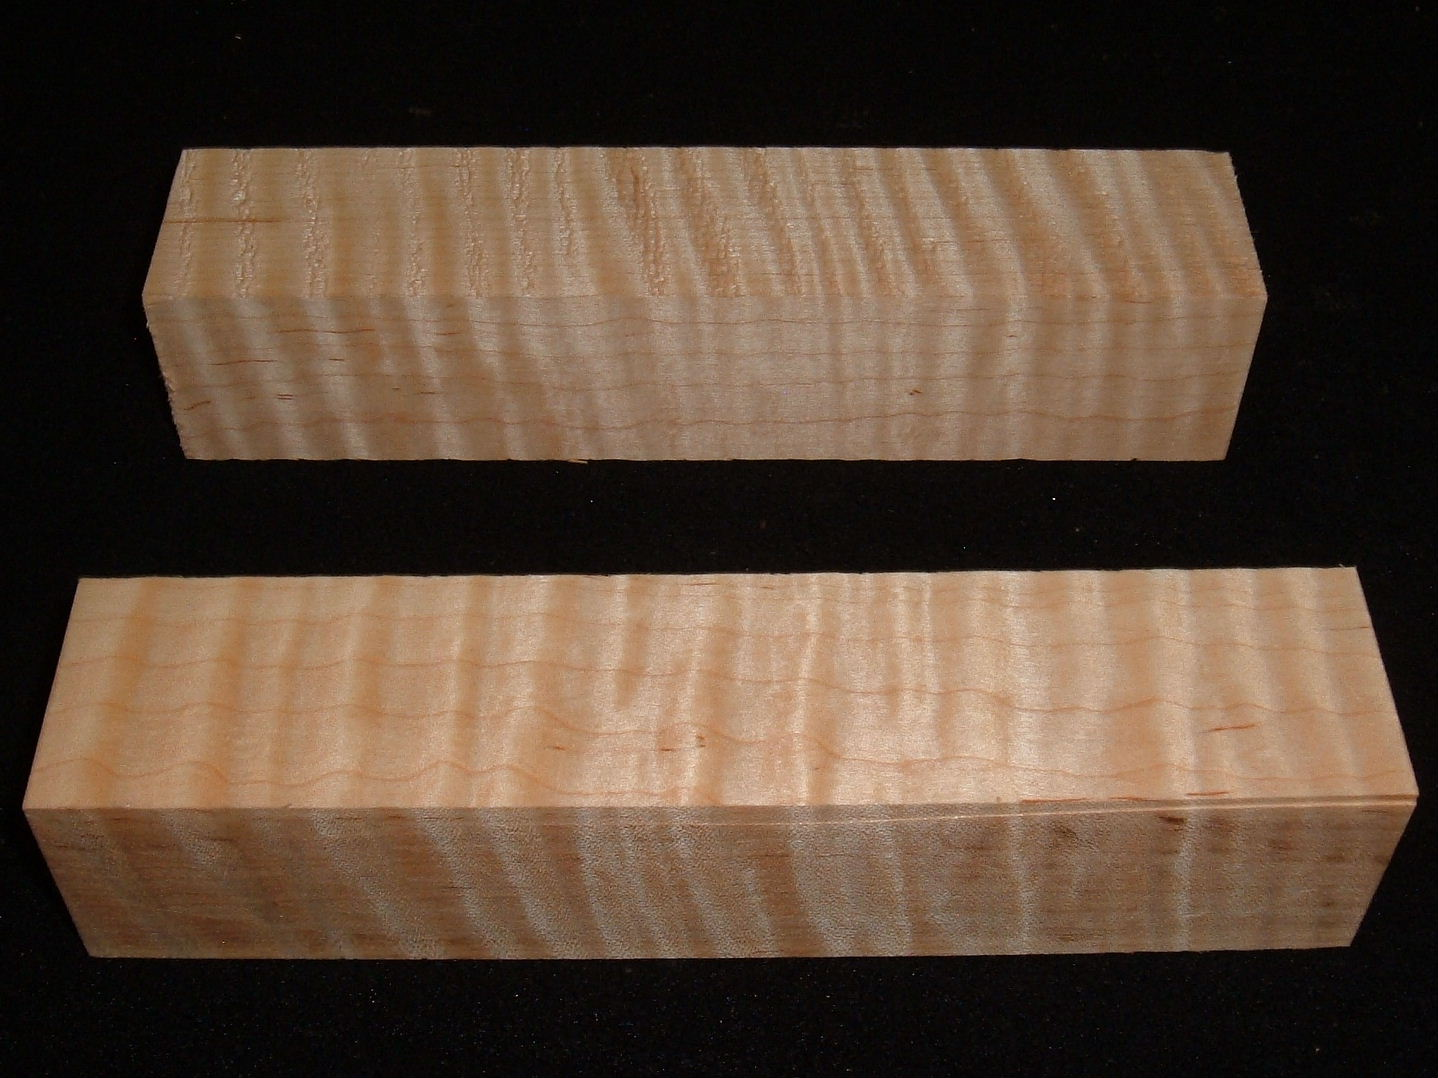 MS-2920n,(2) 1-3/4x1-3/4x8, Curly Tiger Maple, turning blocks